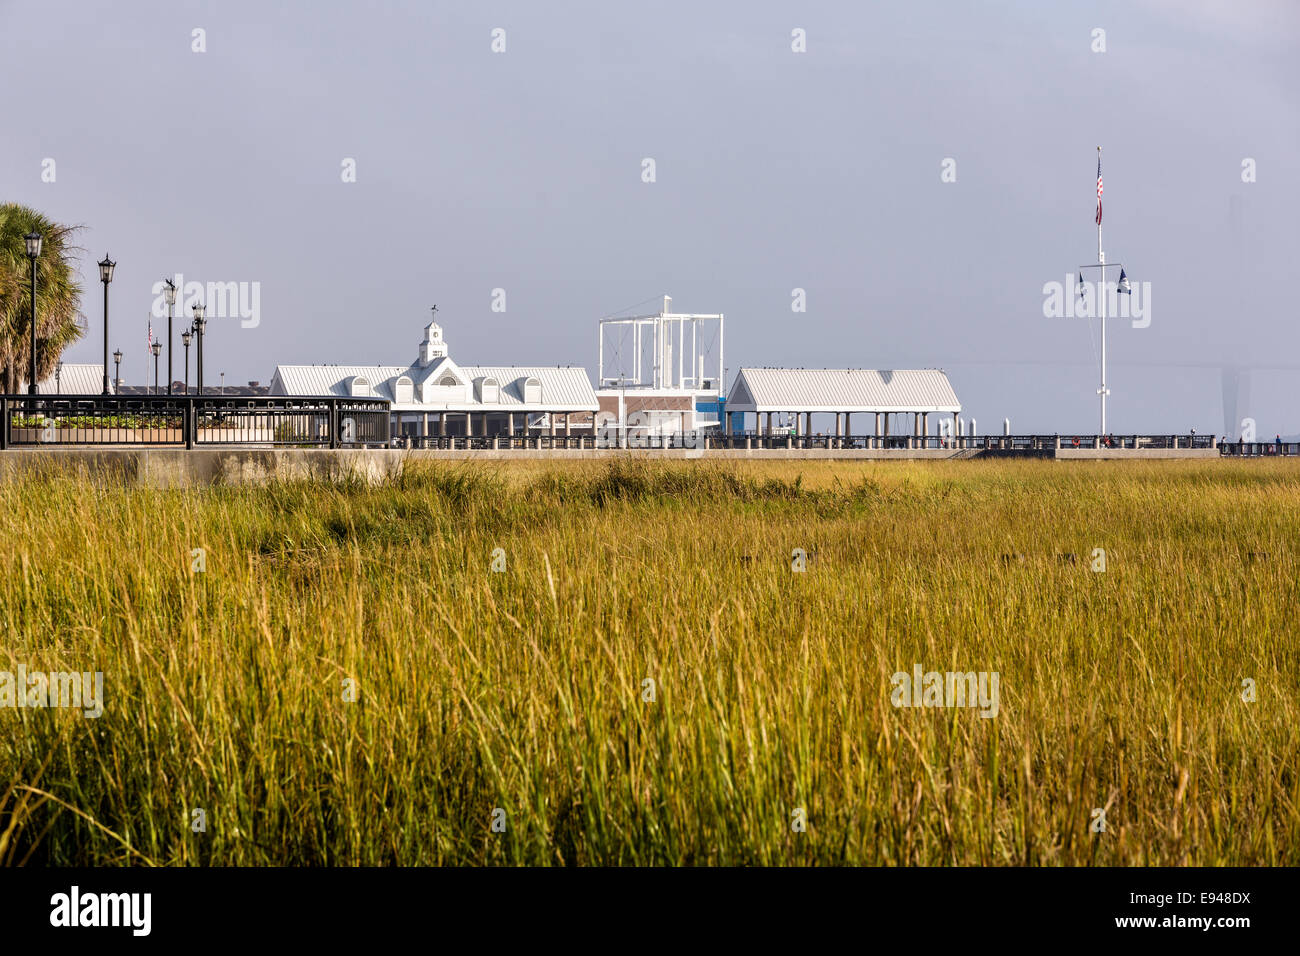 View of the marsh and pier shelters along Waterfront Park on a foggy morning in historic Charleston, SC. - Stock Image